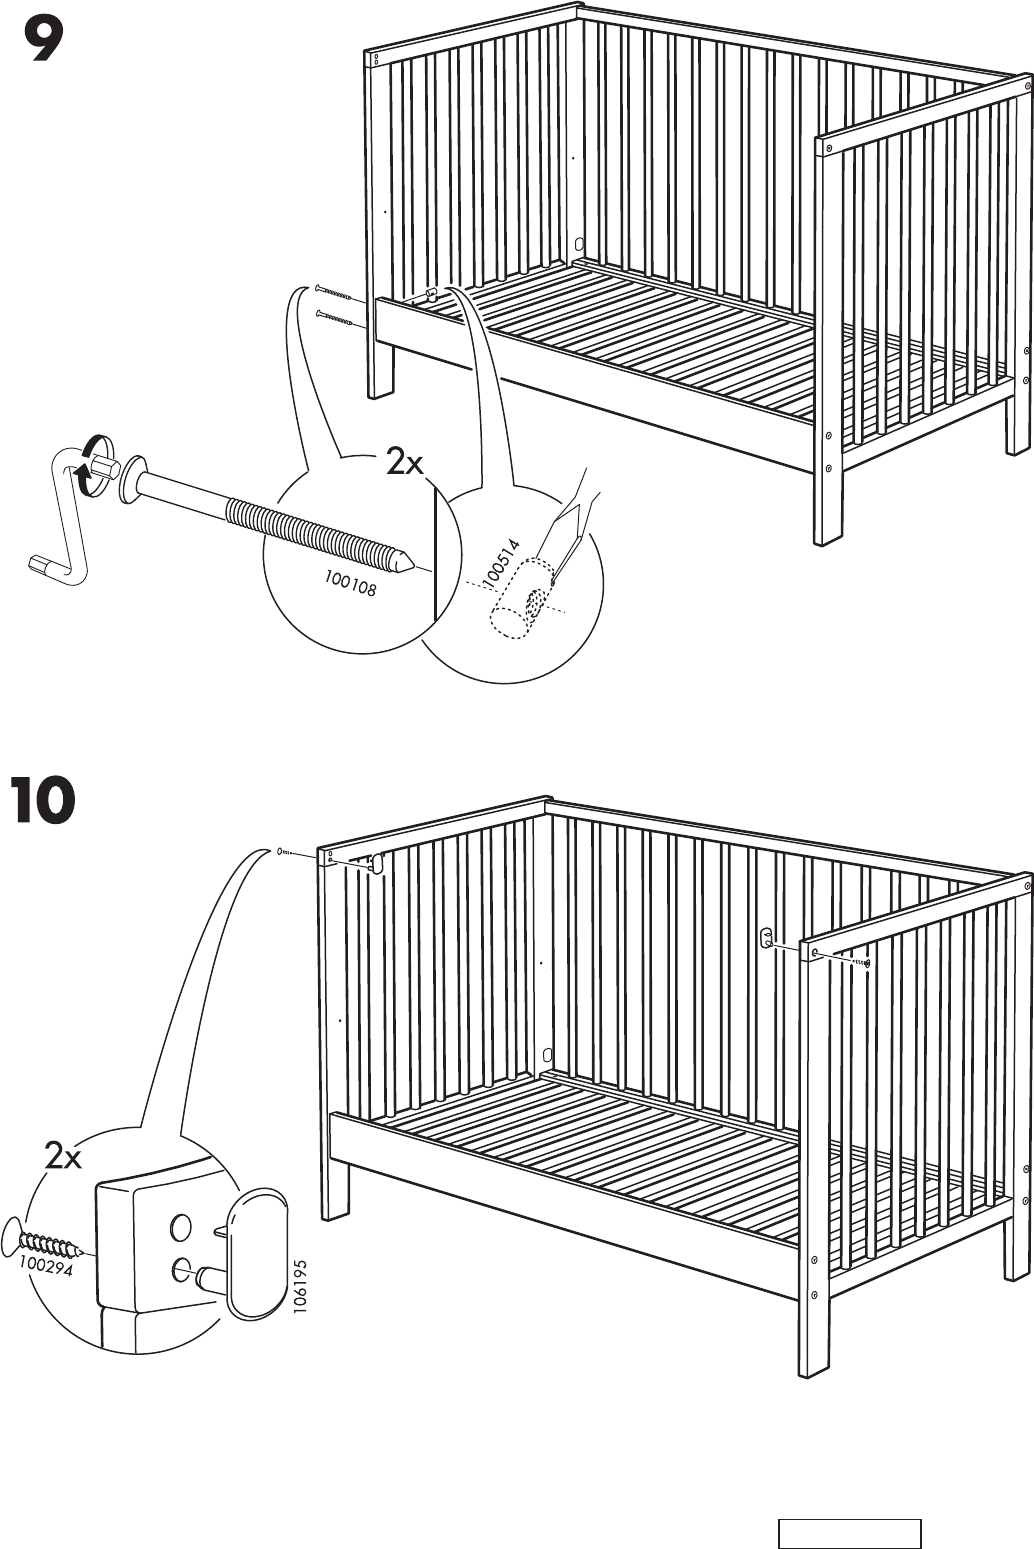 page 16 of ikea crib aa 240443 2 user guide manualsonline com rh babycare manualsonline com ikea diktad crib manual ikea diktad crib manual